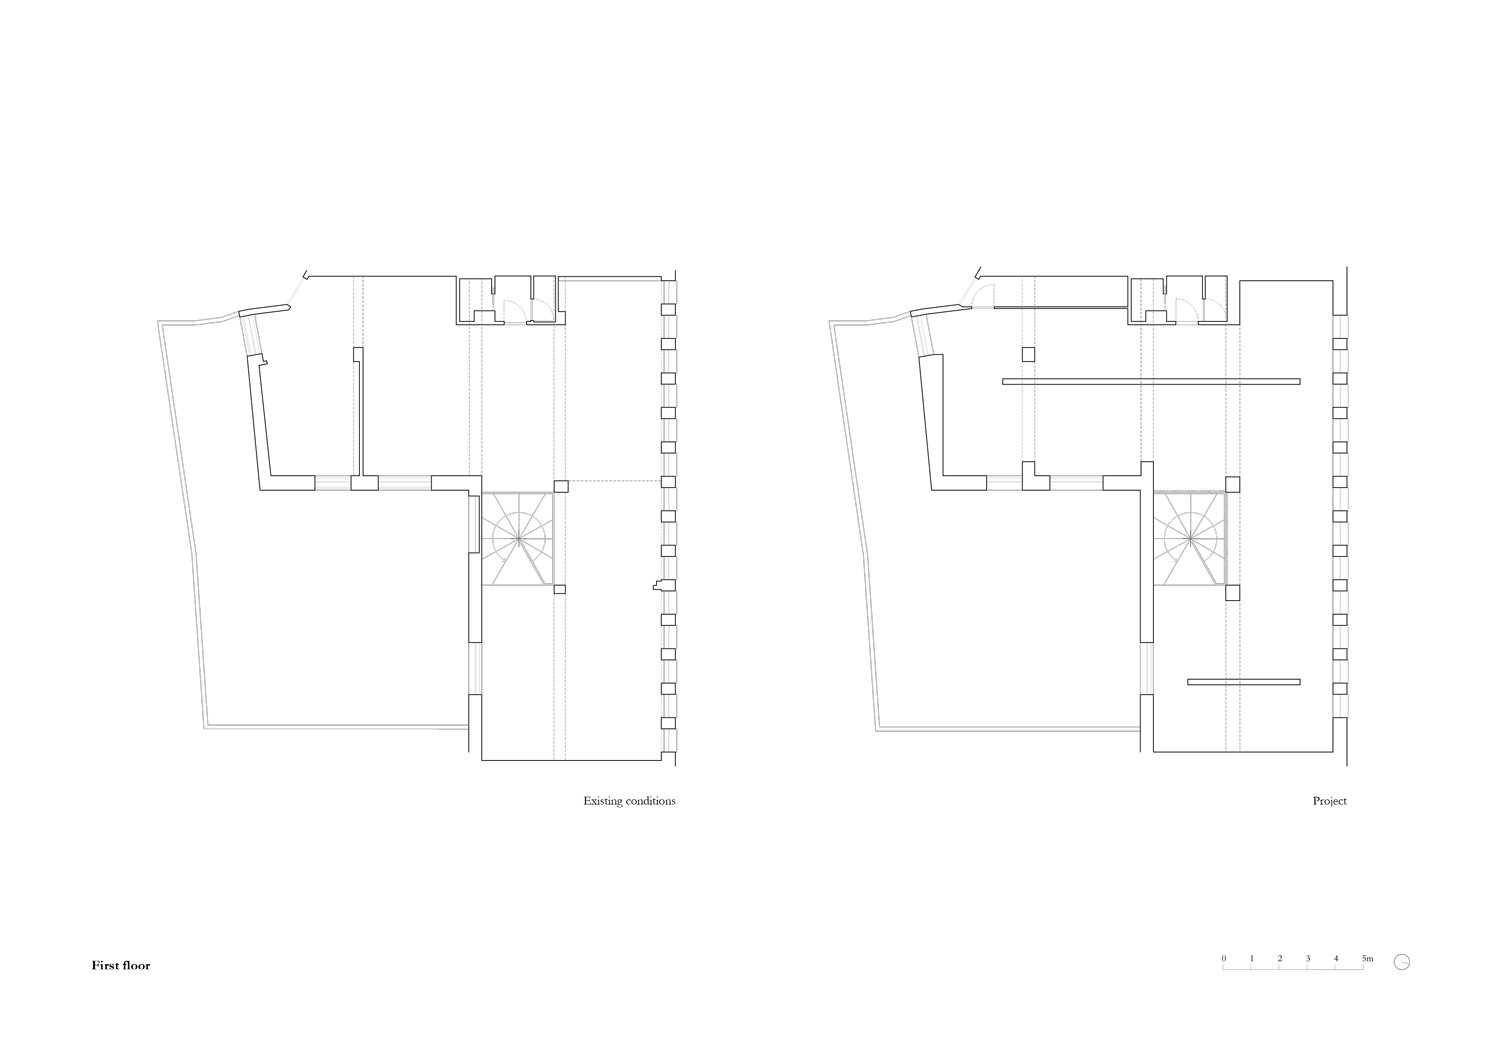 Plan first floor existing (left) and project (right) MORQ}